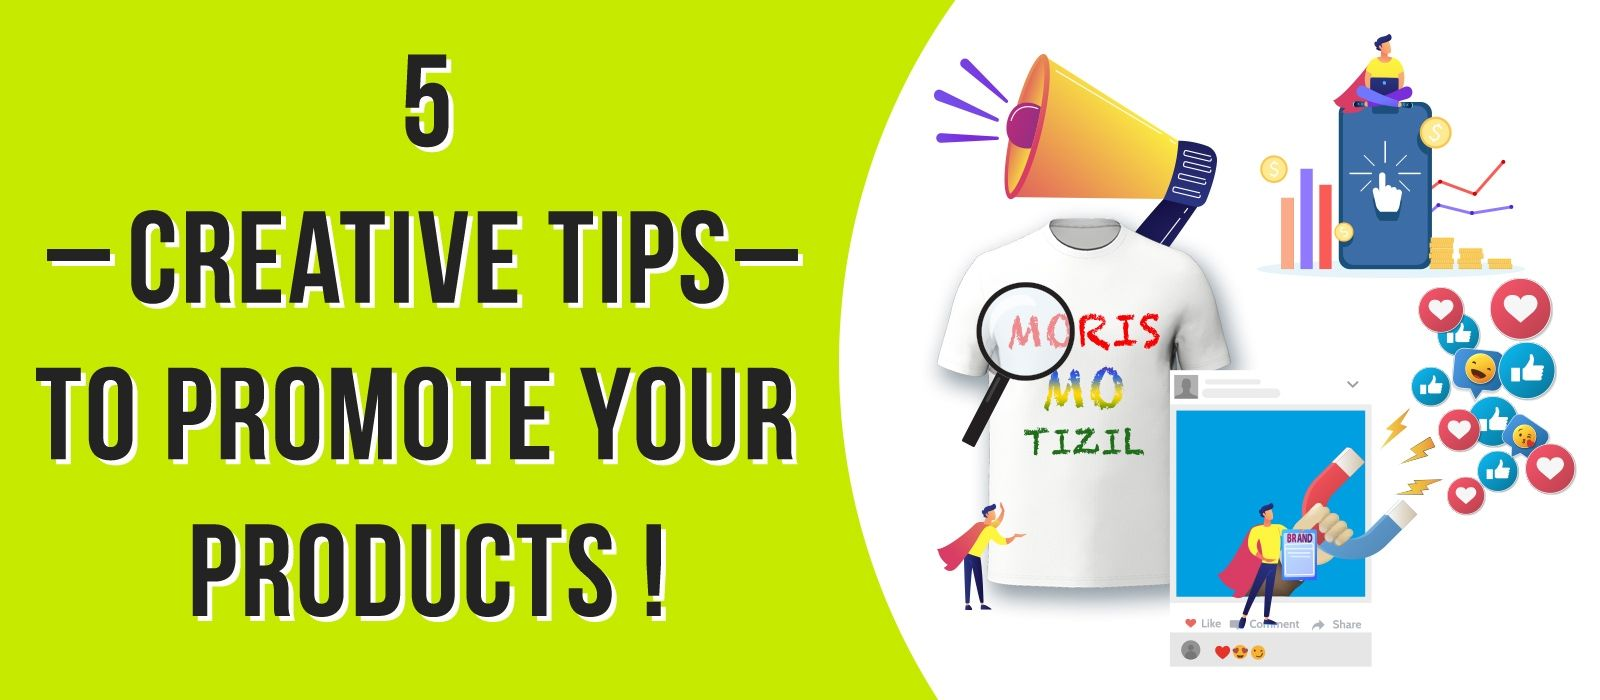 Tips to promote your Moris mo tizil products